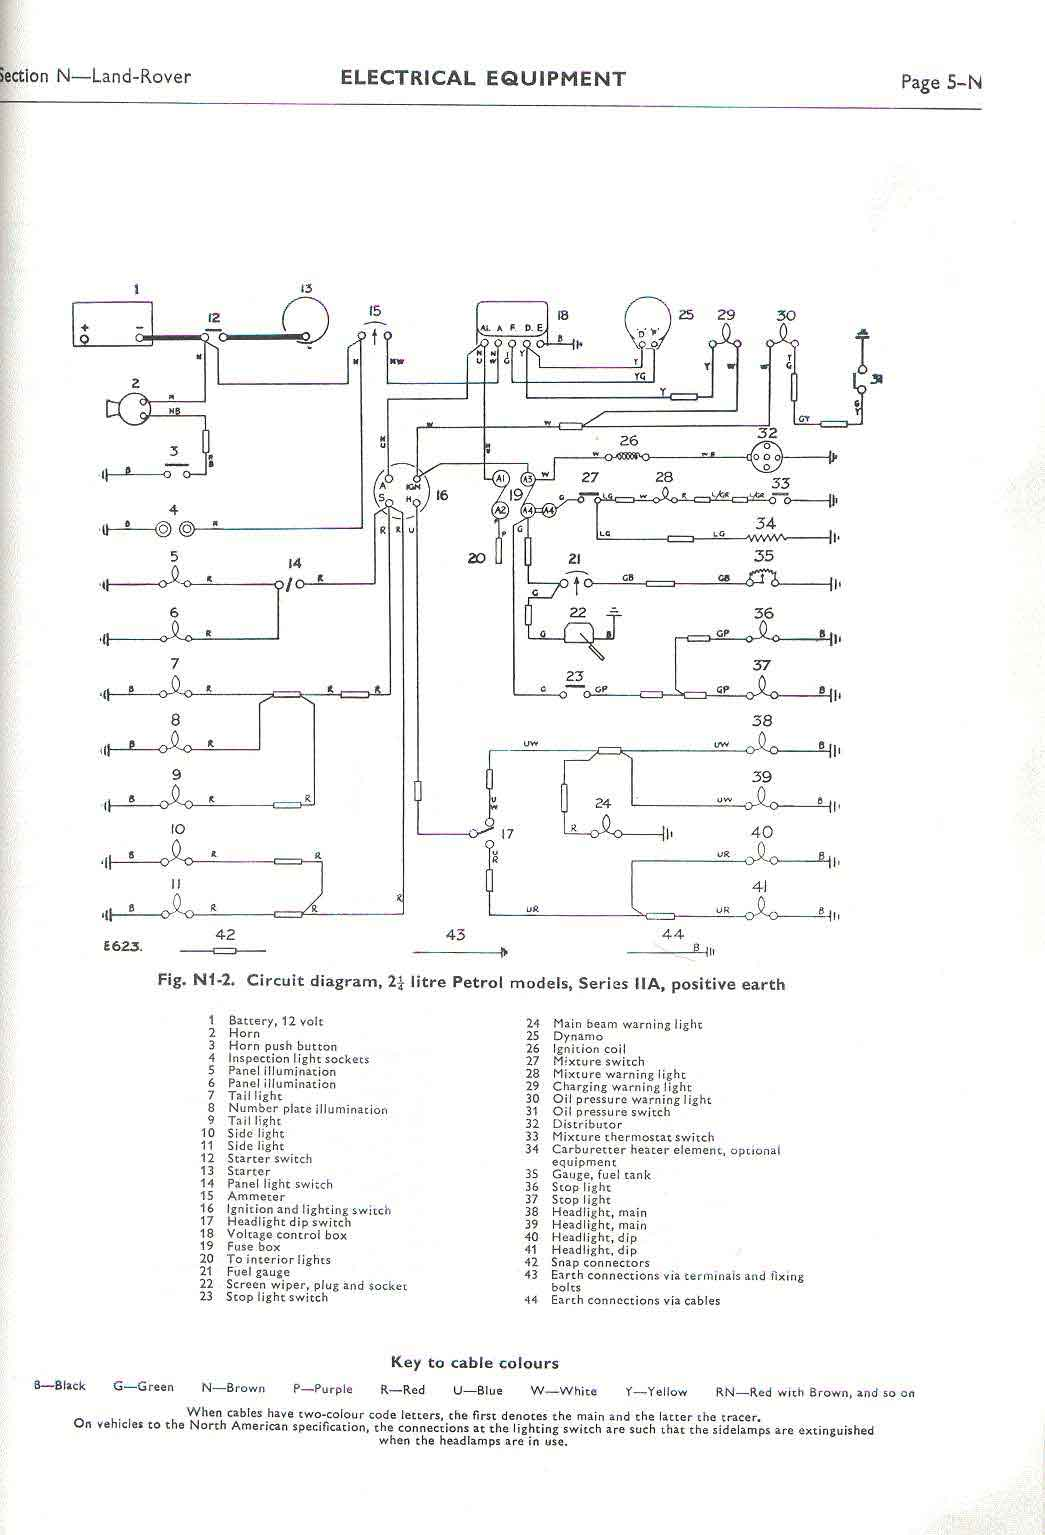 land rover wiring diagram kenwood car audio land rover faq - repair & maintenance - series ... series 1 land rover wiring diagram